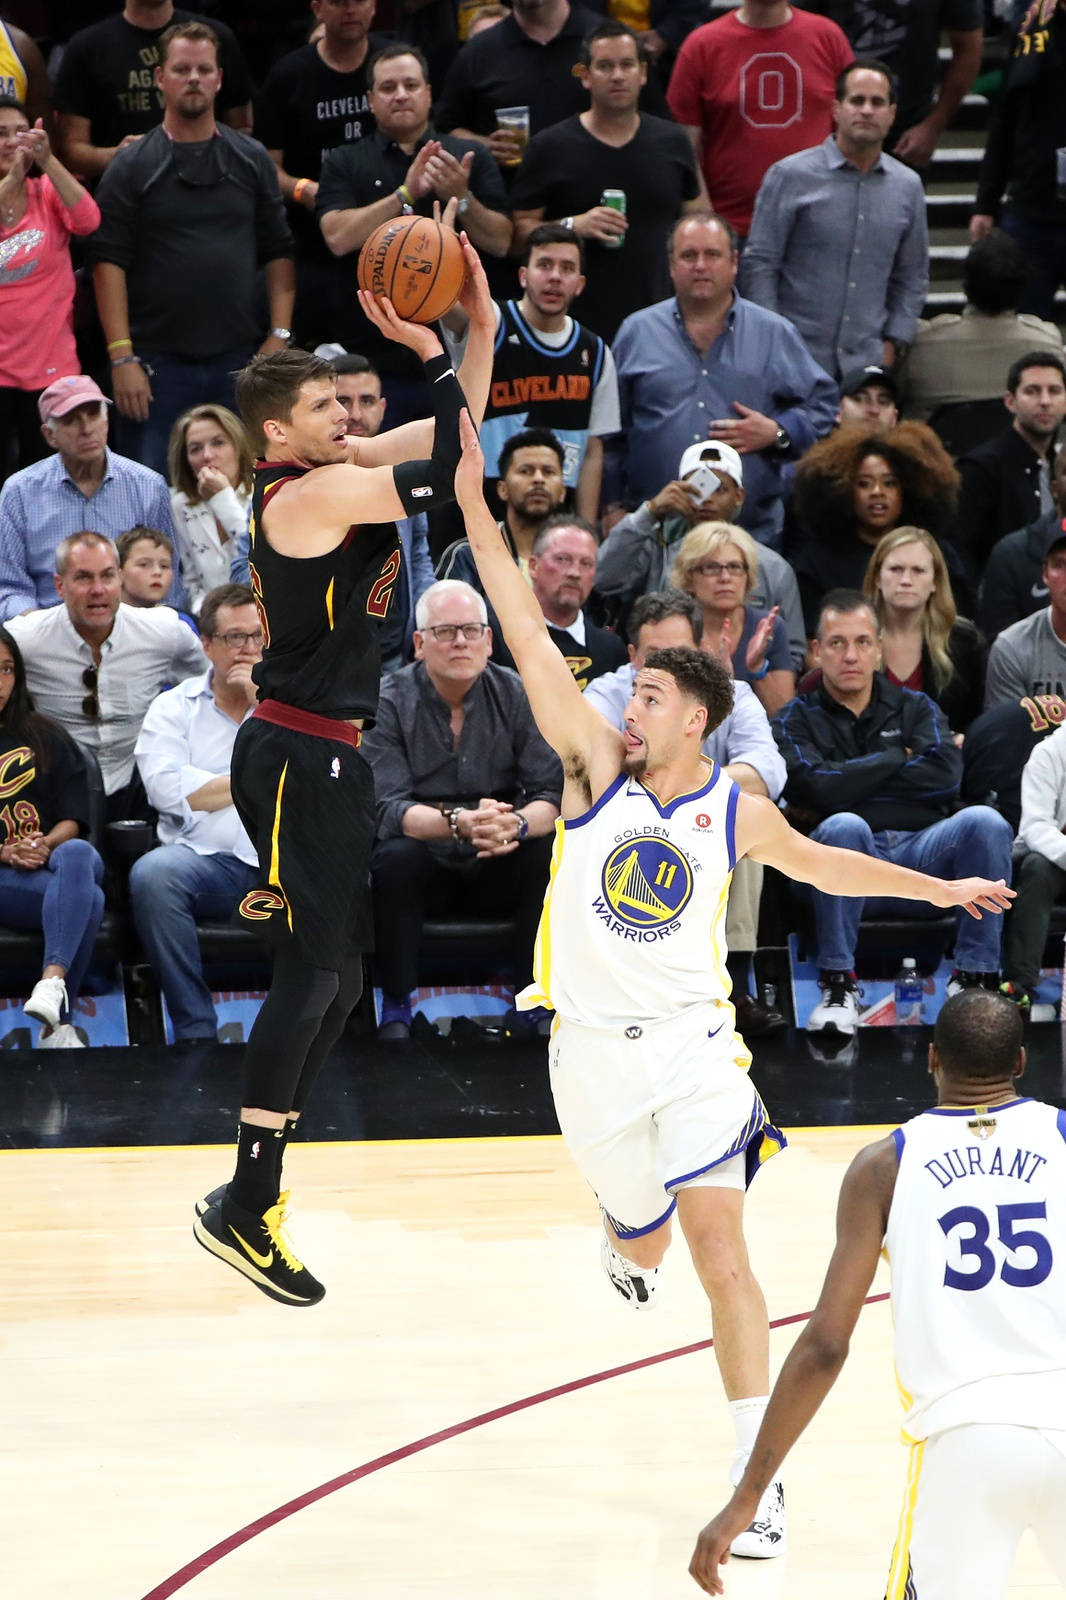 Klay Thompson #11 of the Golden State Warriors blocks Kyle Korver #26 of the Cleveland Cavaliers in Game Four of the 2018 NBA Finals on June 8, 2018 at Quicken Loans Arena in Cleveland, Ohio.